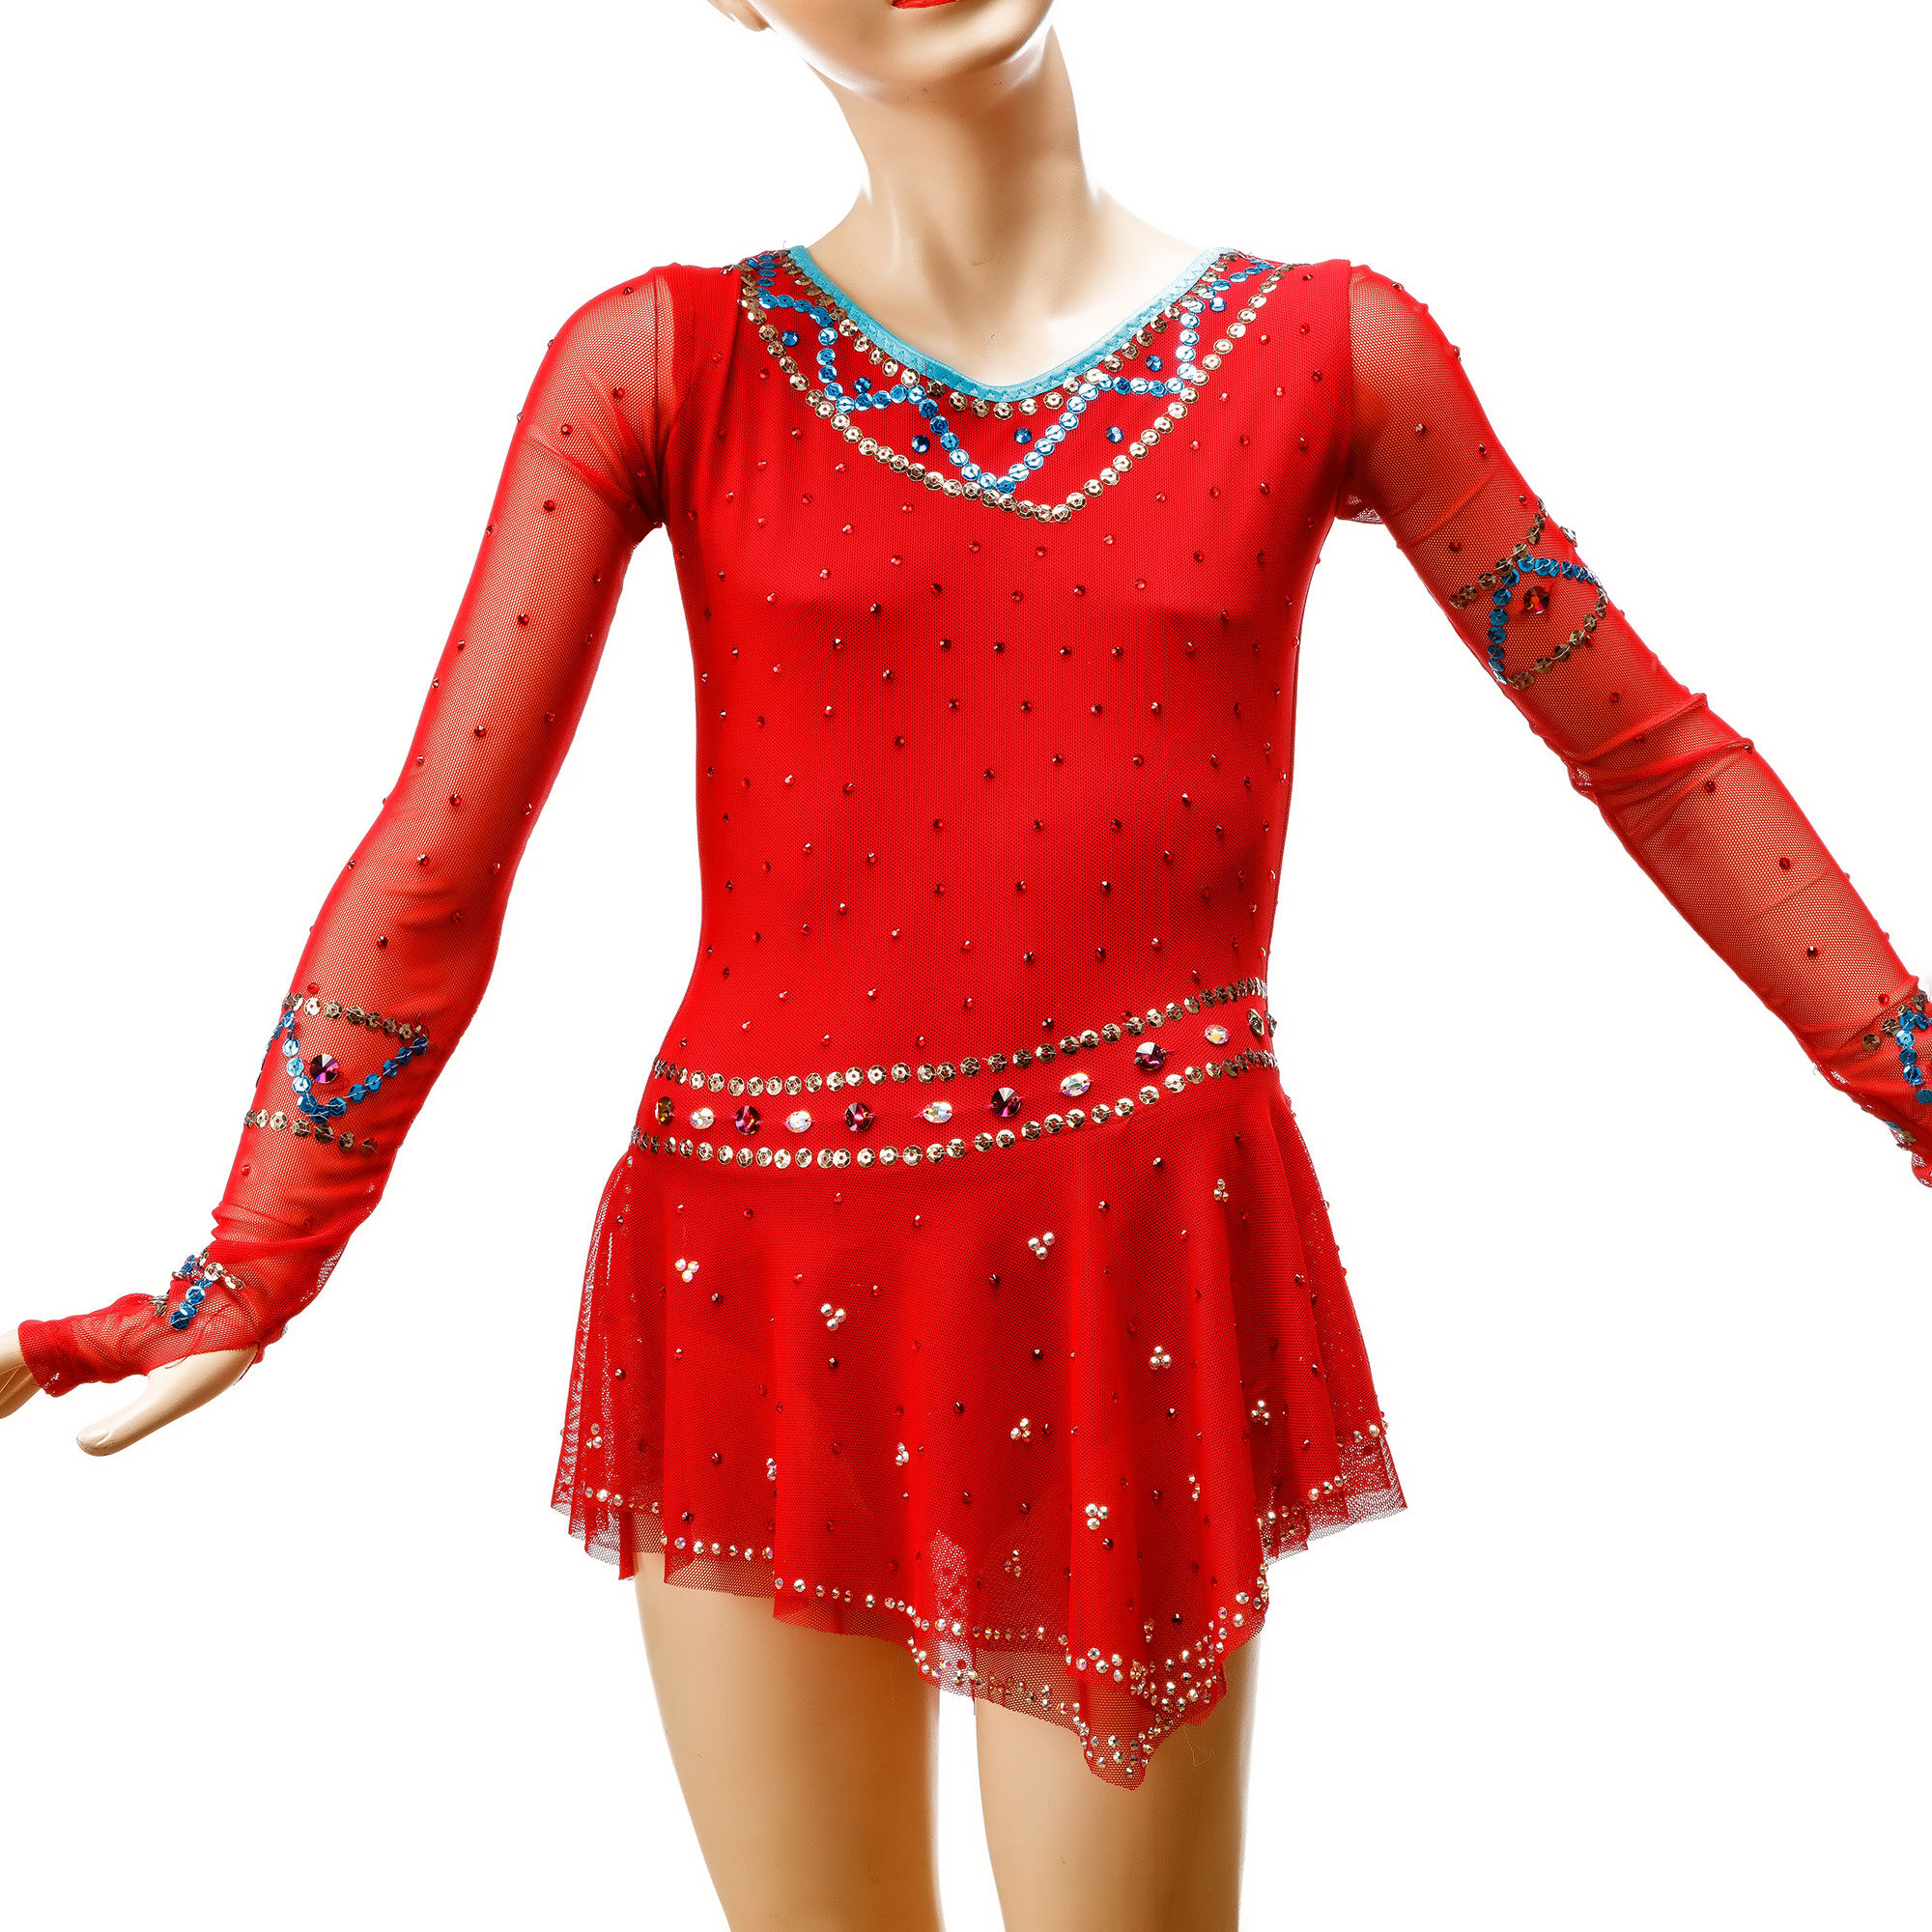 Red Ice Figure Skating Competition Leotard 131